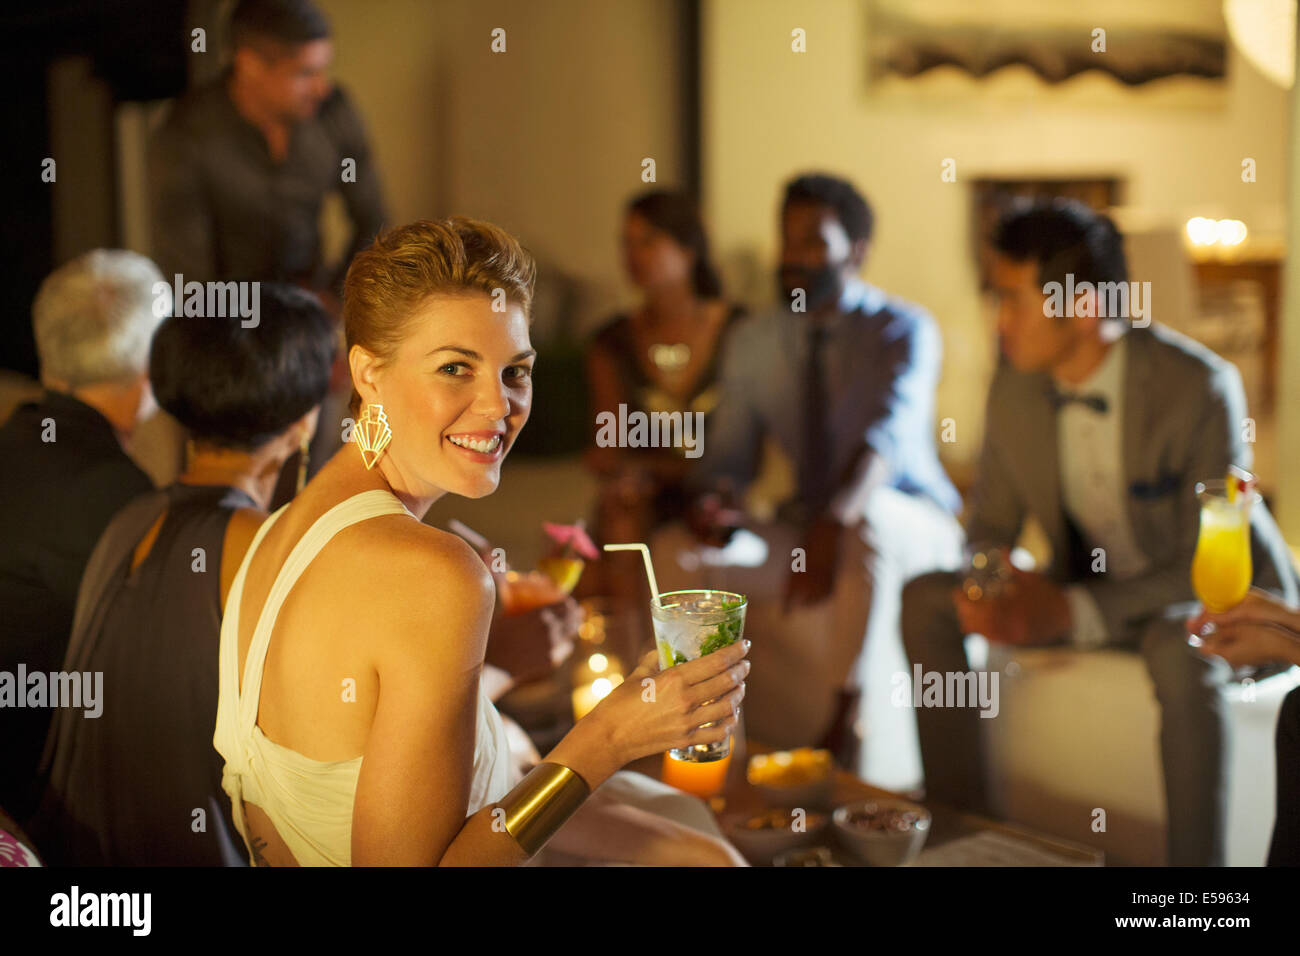 Woman smiling at party Photo Stock